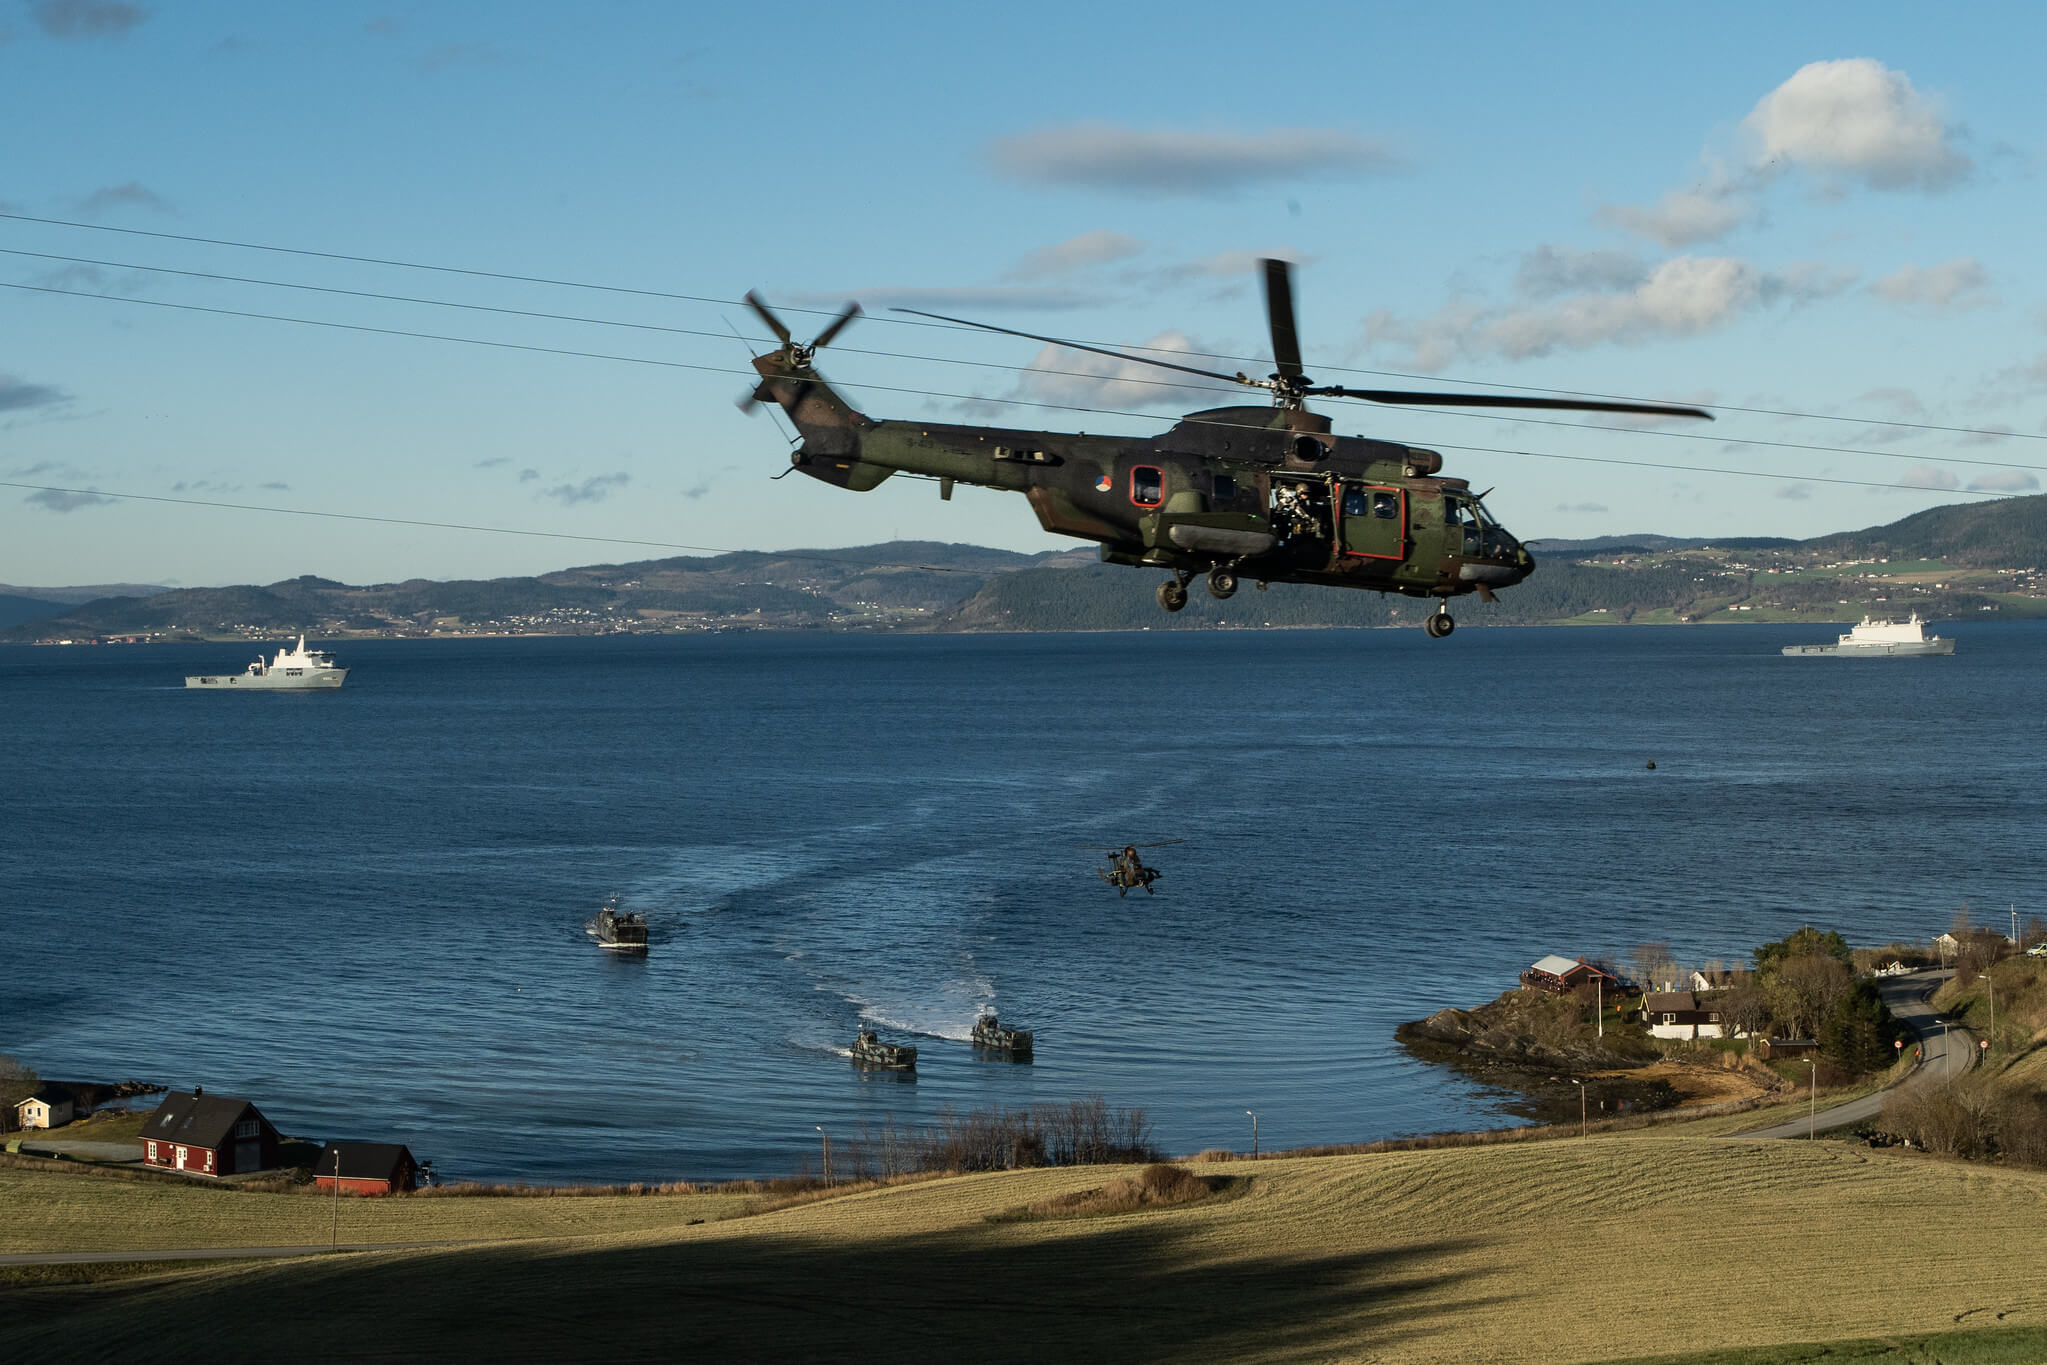 Boxhoorn - A Dutch Cougar helicopter takes off while NATO forces prepare to make an amphibious landing at a media event held during Exercise Trident Juncture 18 in 2018. NATO